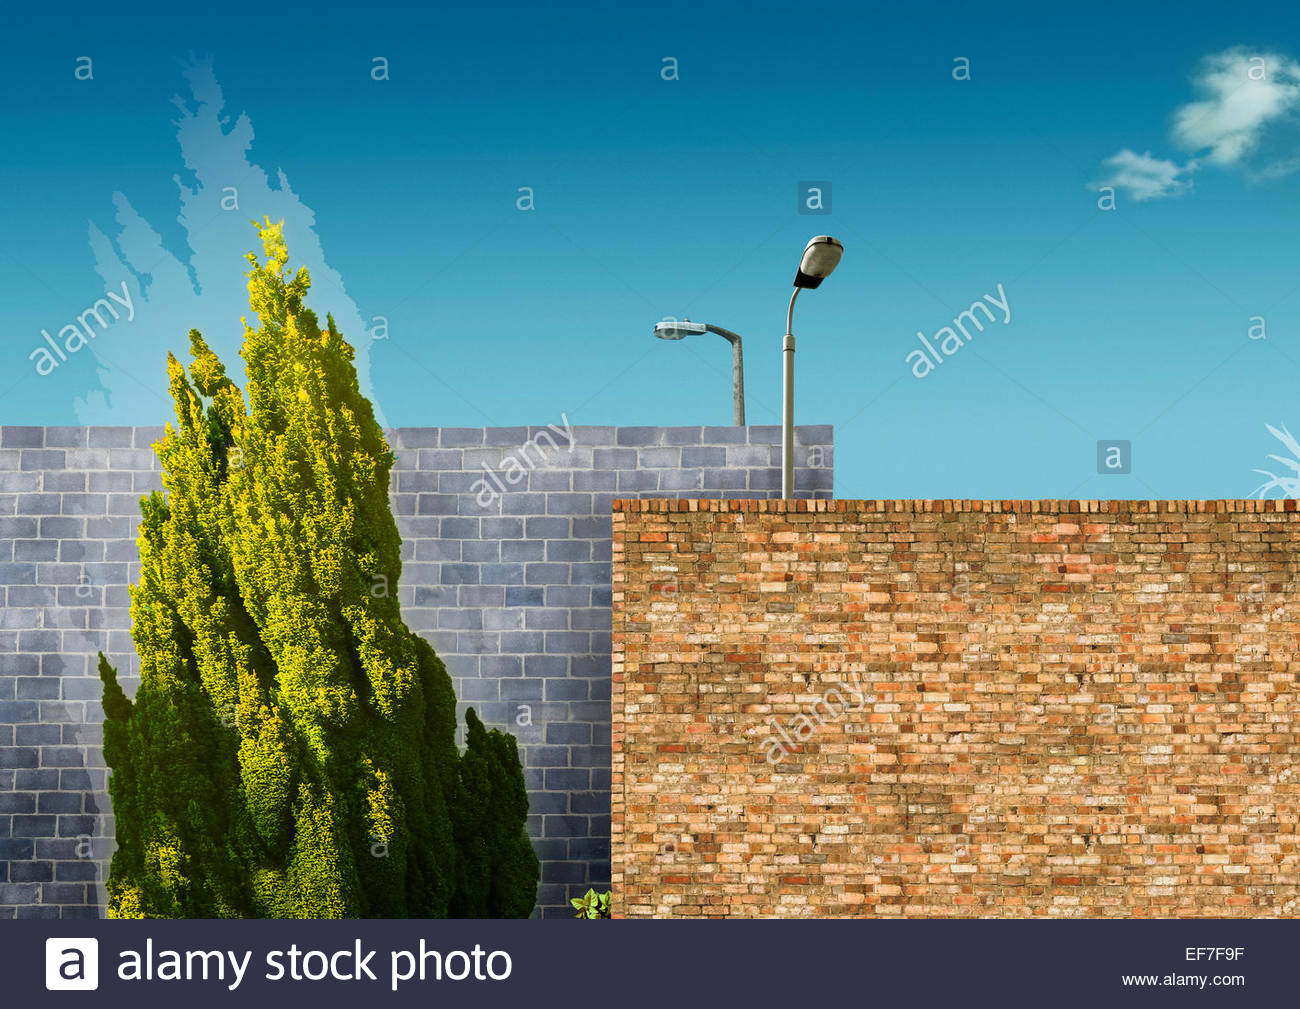 Barrier of two brick walls with street lamps - Stock Image